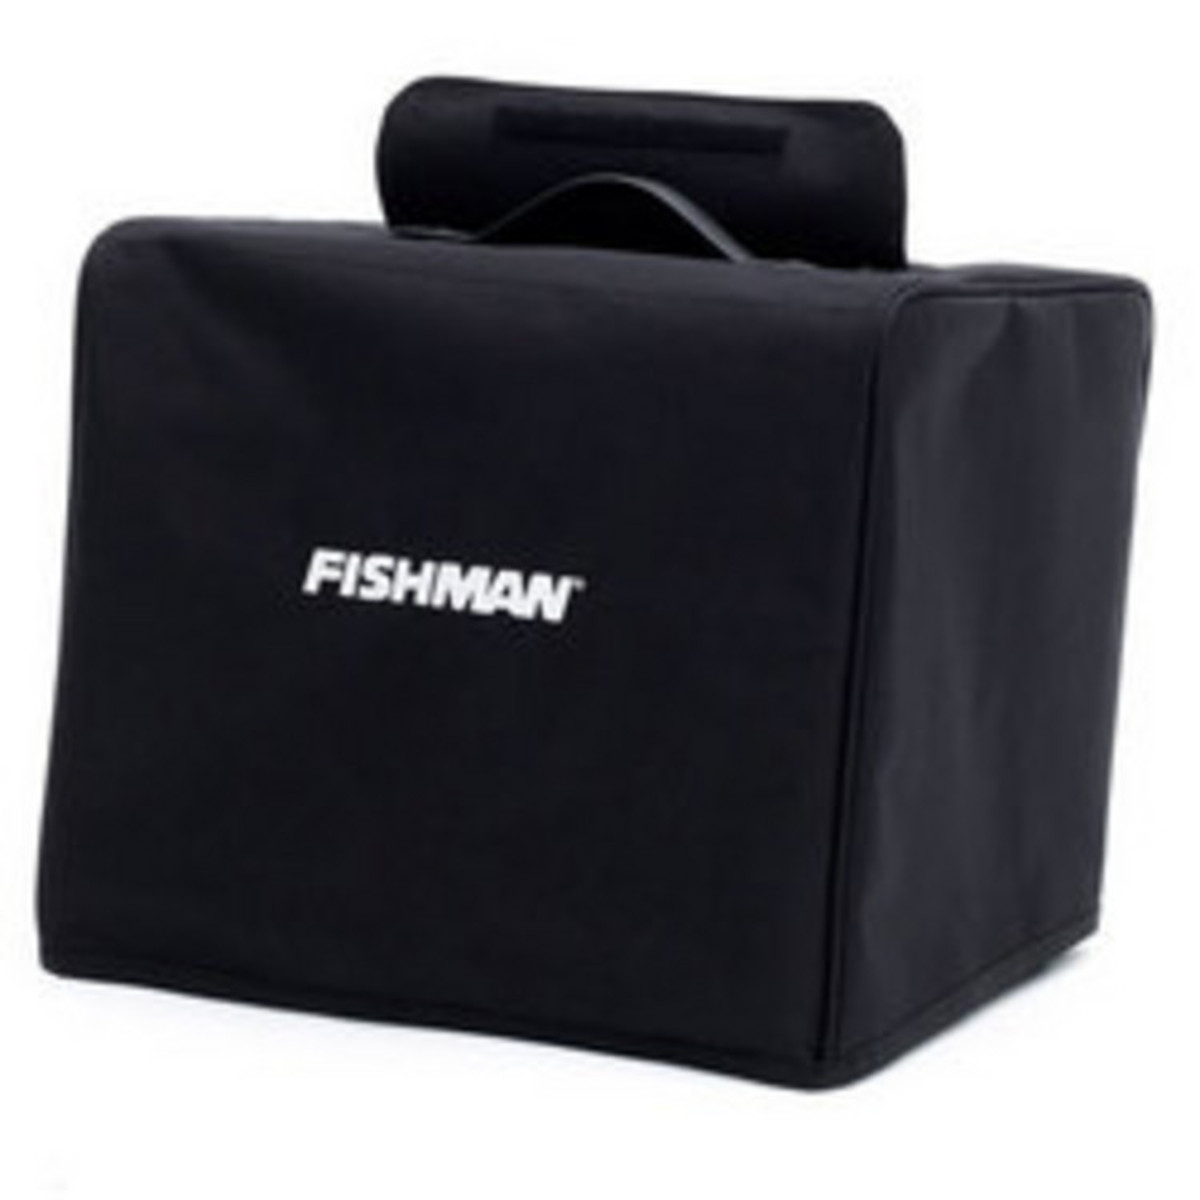 Image of Fishman Transport Cover For Loudbox Artist Amplifier